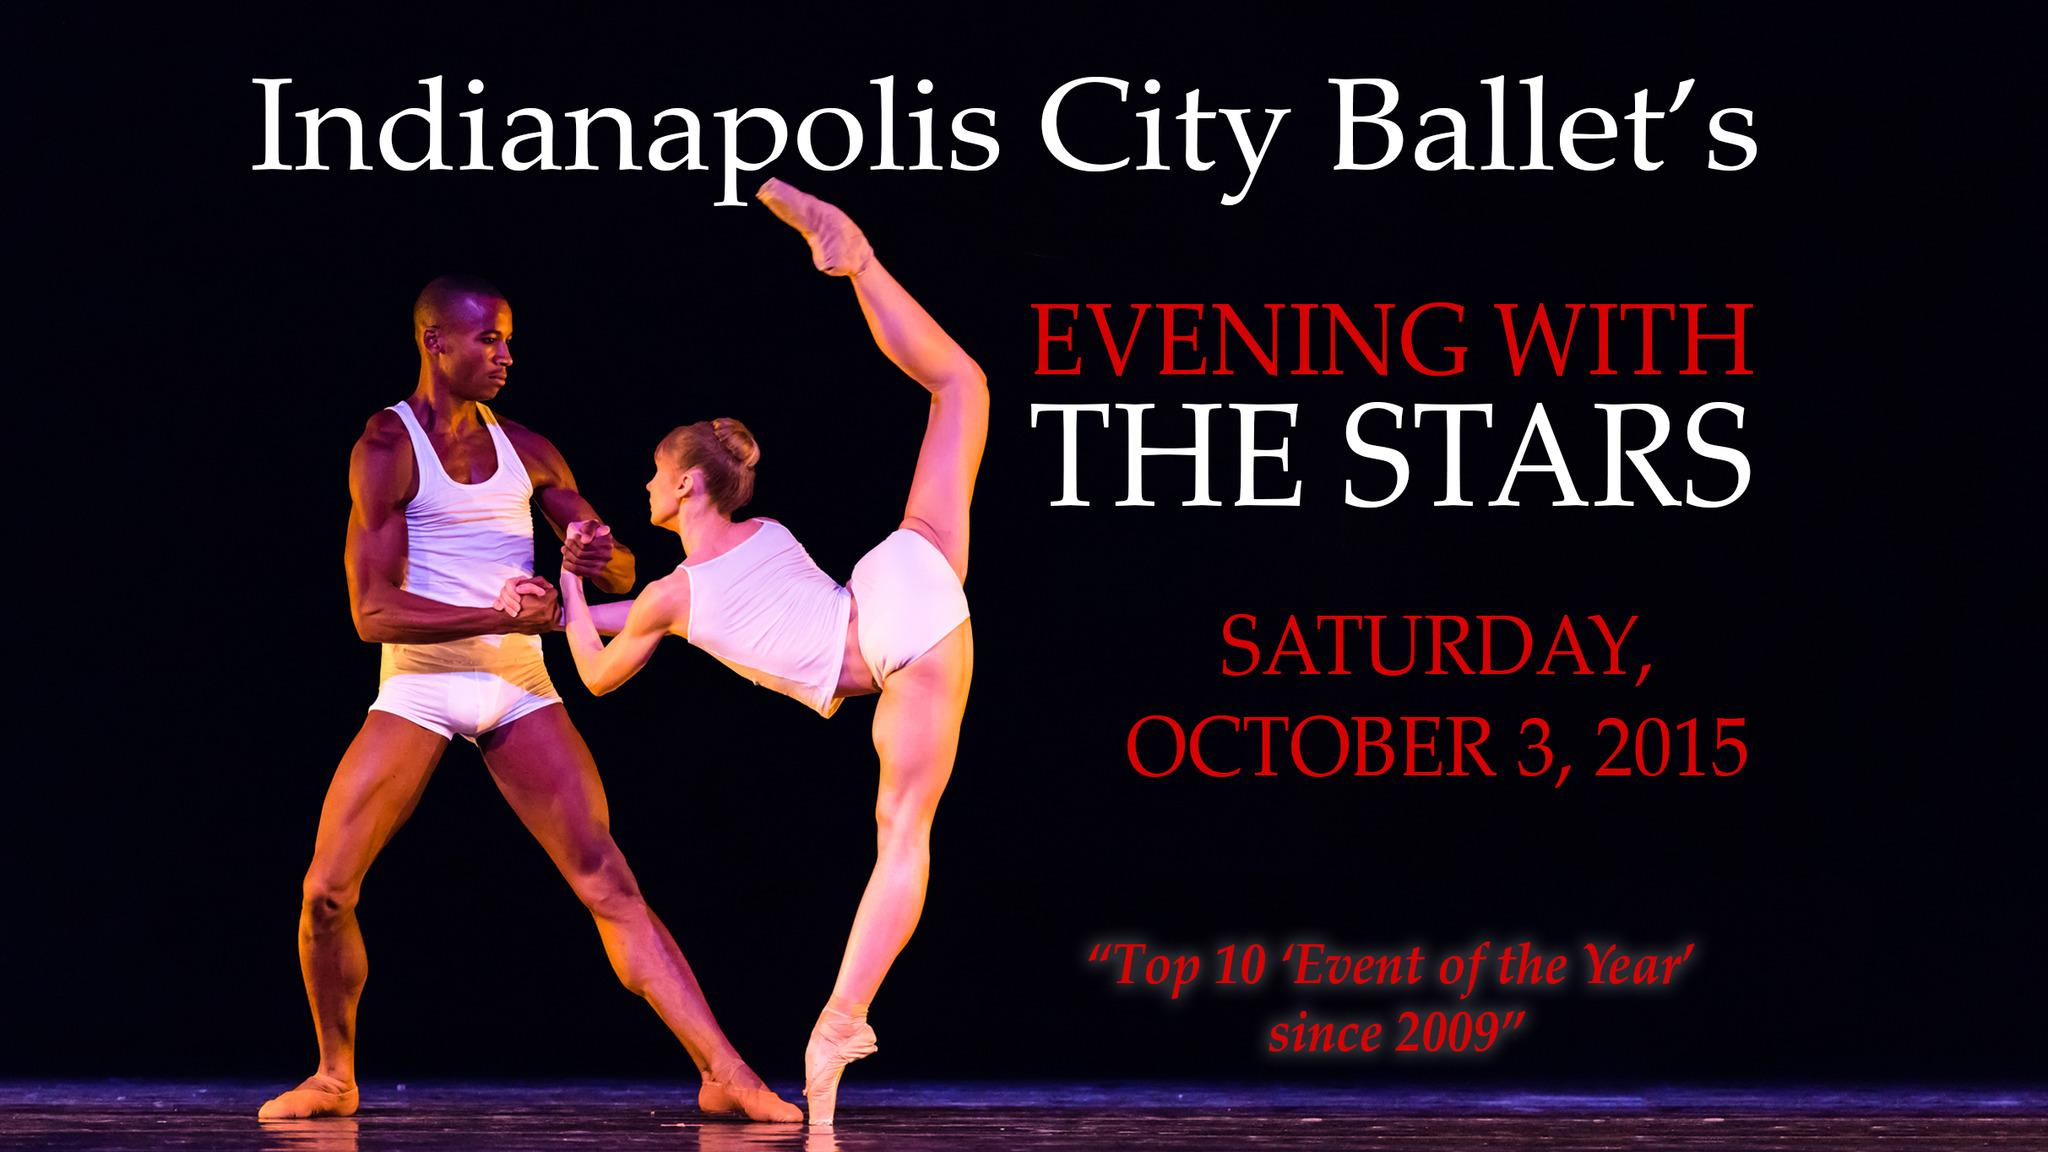 Indianapolis City Ballet's Evening with the Stars - Indianapolis, IN 46204